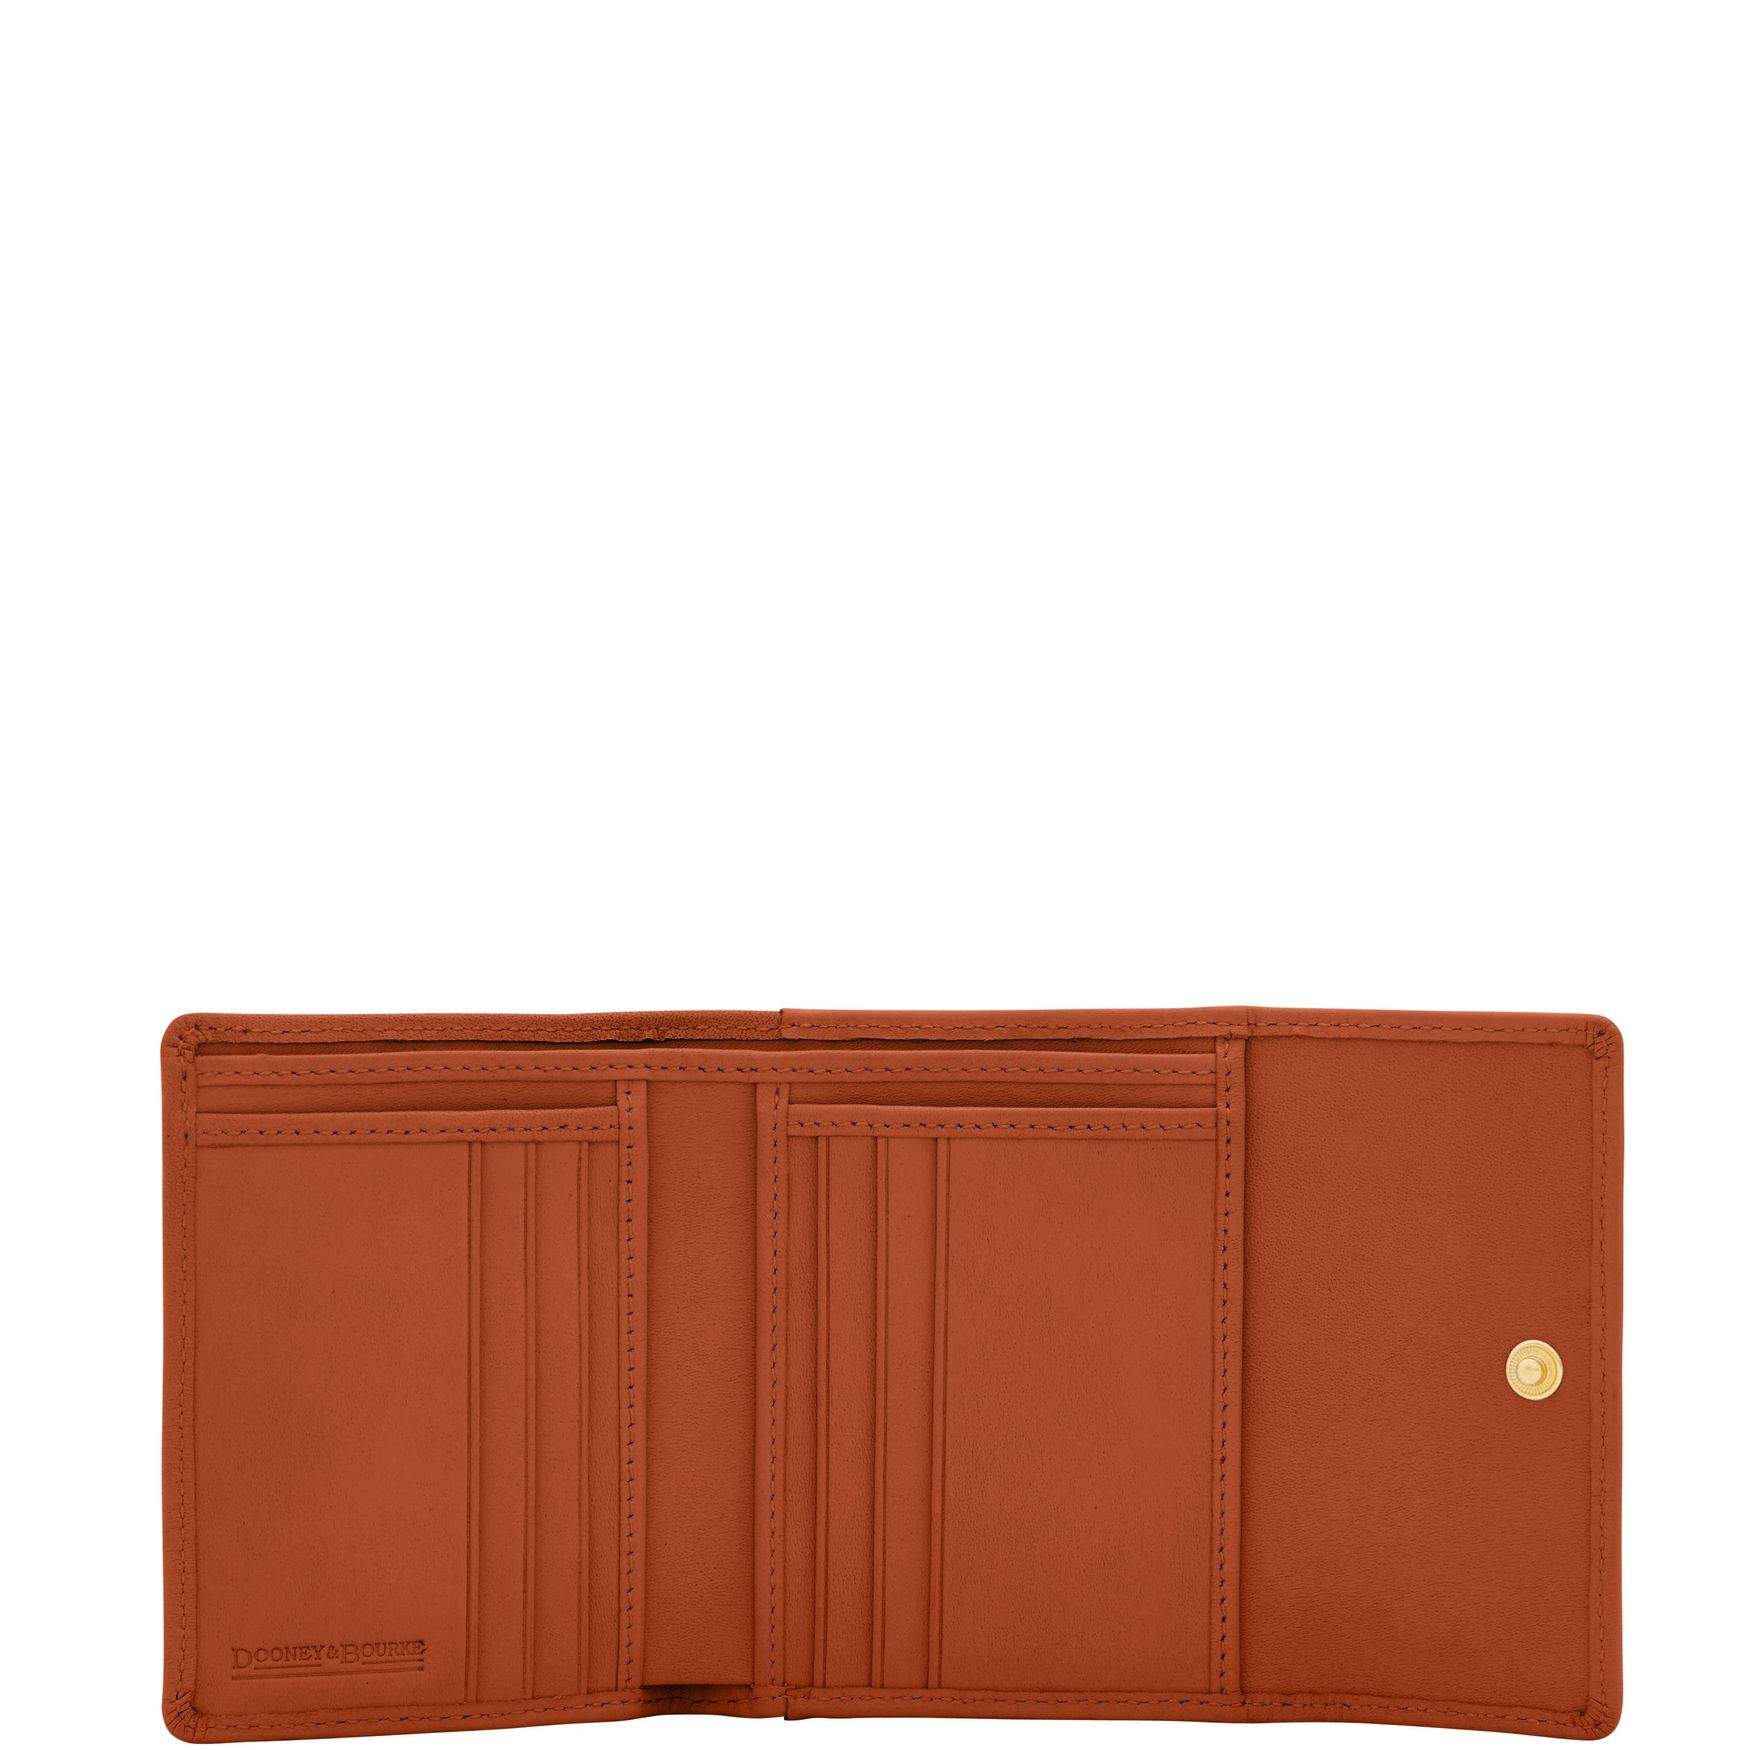 Dooney-amp-Bourke-Emerson-Small-Flap-Wallet thumbnail 33